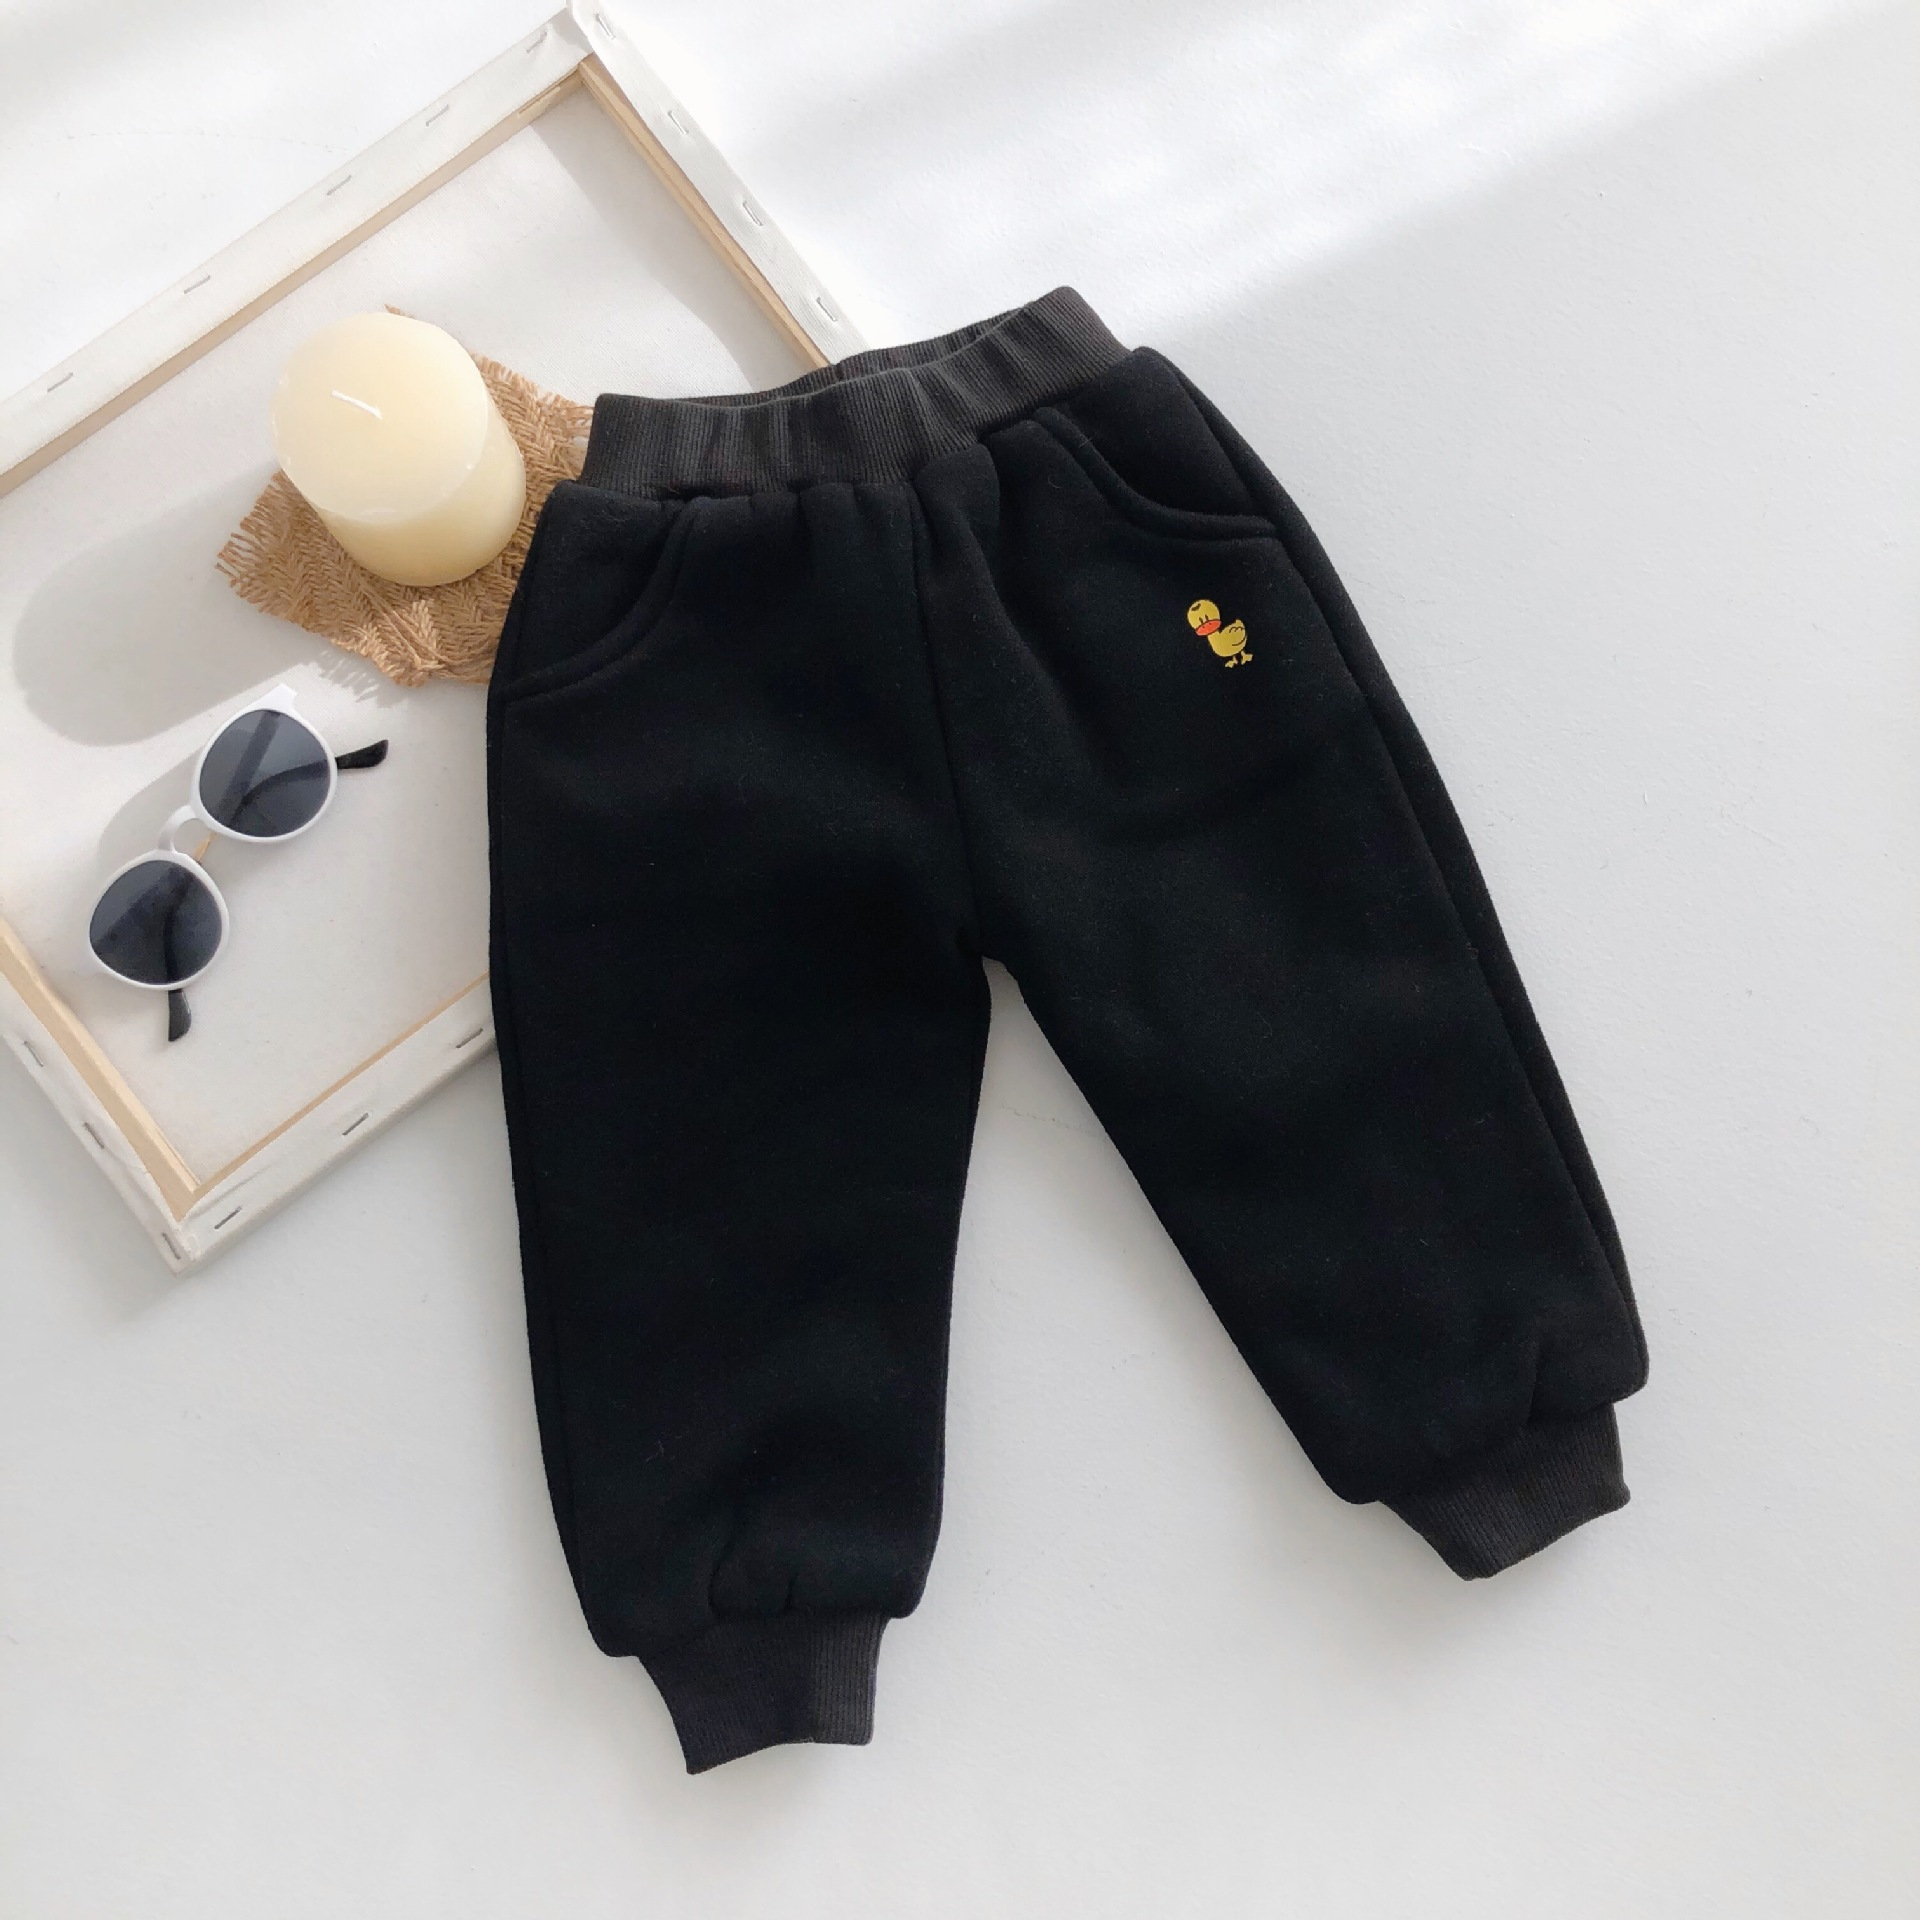 2019 new arrival girls boys pant autumn winter fashion soft kids girls pants 2-7t